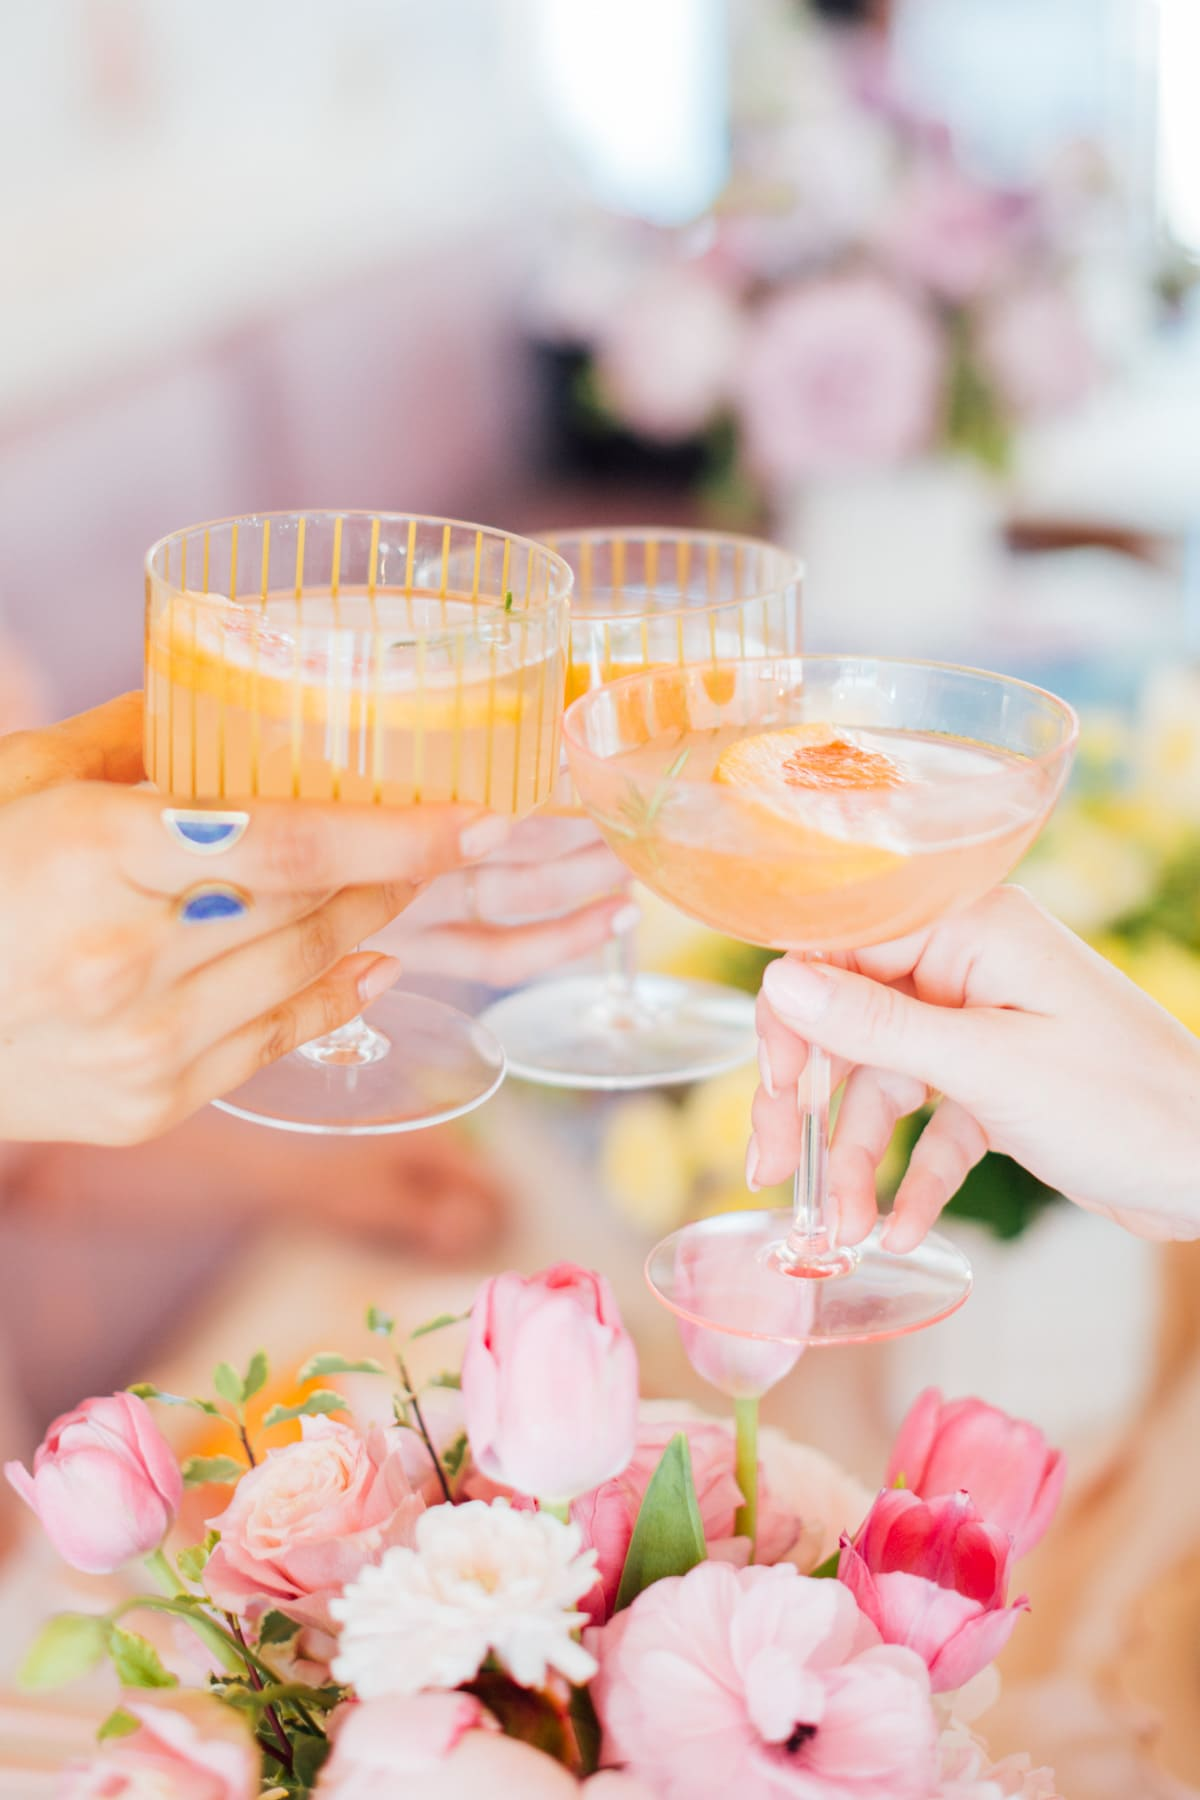 brunch cocktails! - A Perfectly Pastel Easter Table Idea by top Houston lifestyle blogger Ashley Rose of Sugar & Cloth #diy #tablescape #ideas #easter #pastel #party #decorations #brunch #bridalshower #bridal #shower #baby